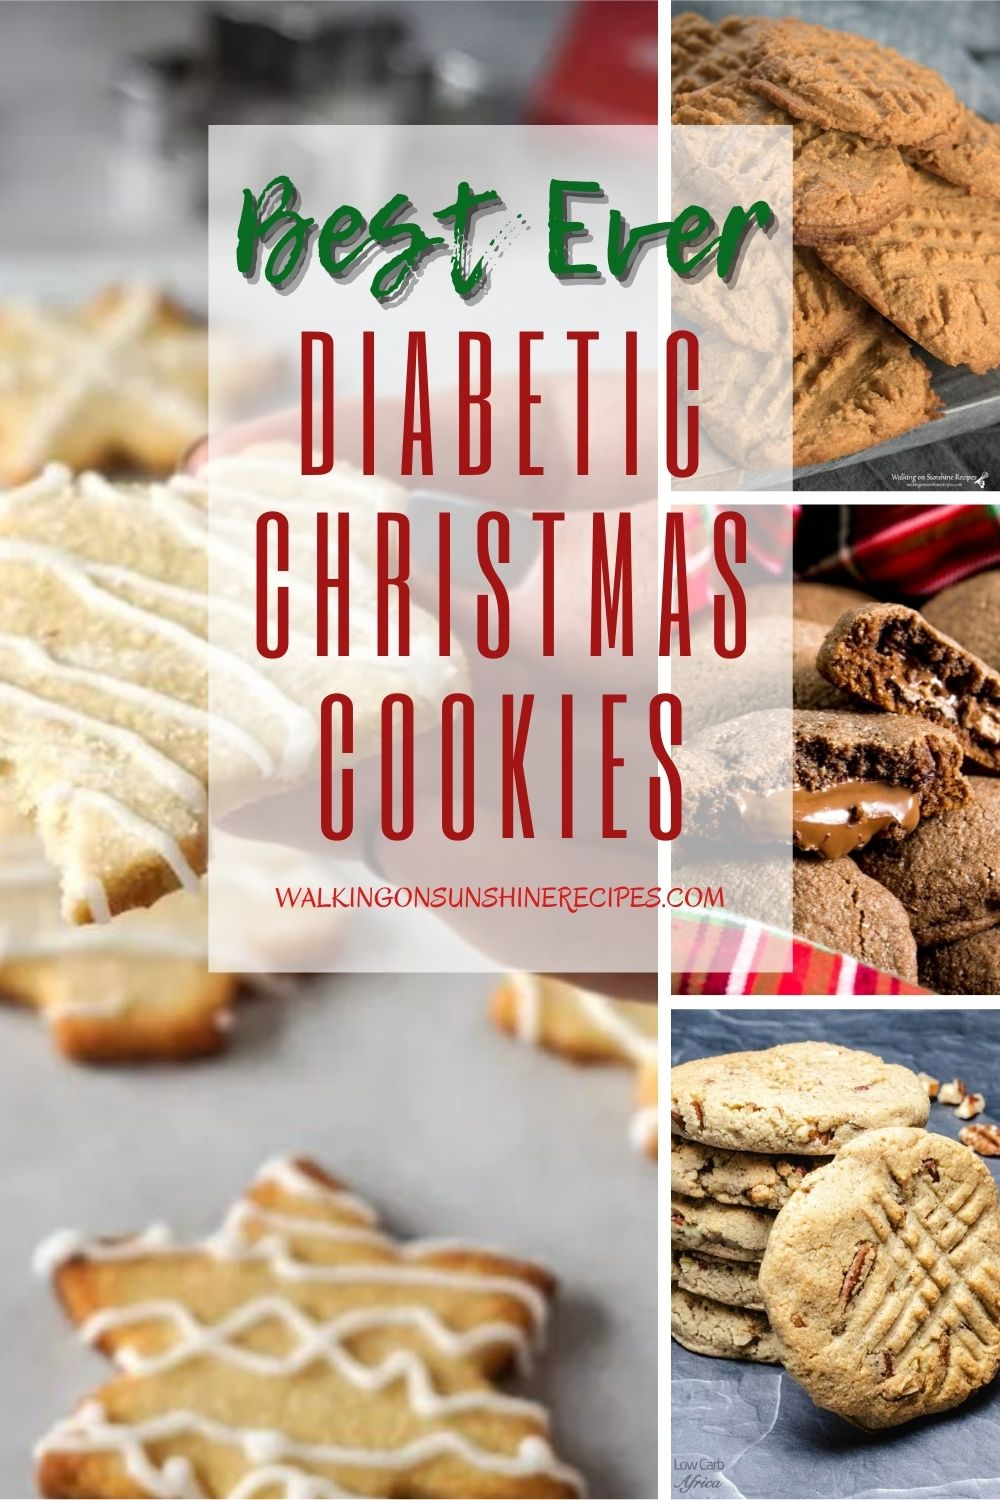 Christmas cut out cookies, peanut butter cookies, chocolate peanut butter cookies, Cinnamon pecan cookies are all diabetic friendly recipes for the holidays.